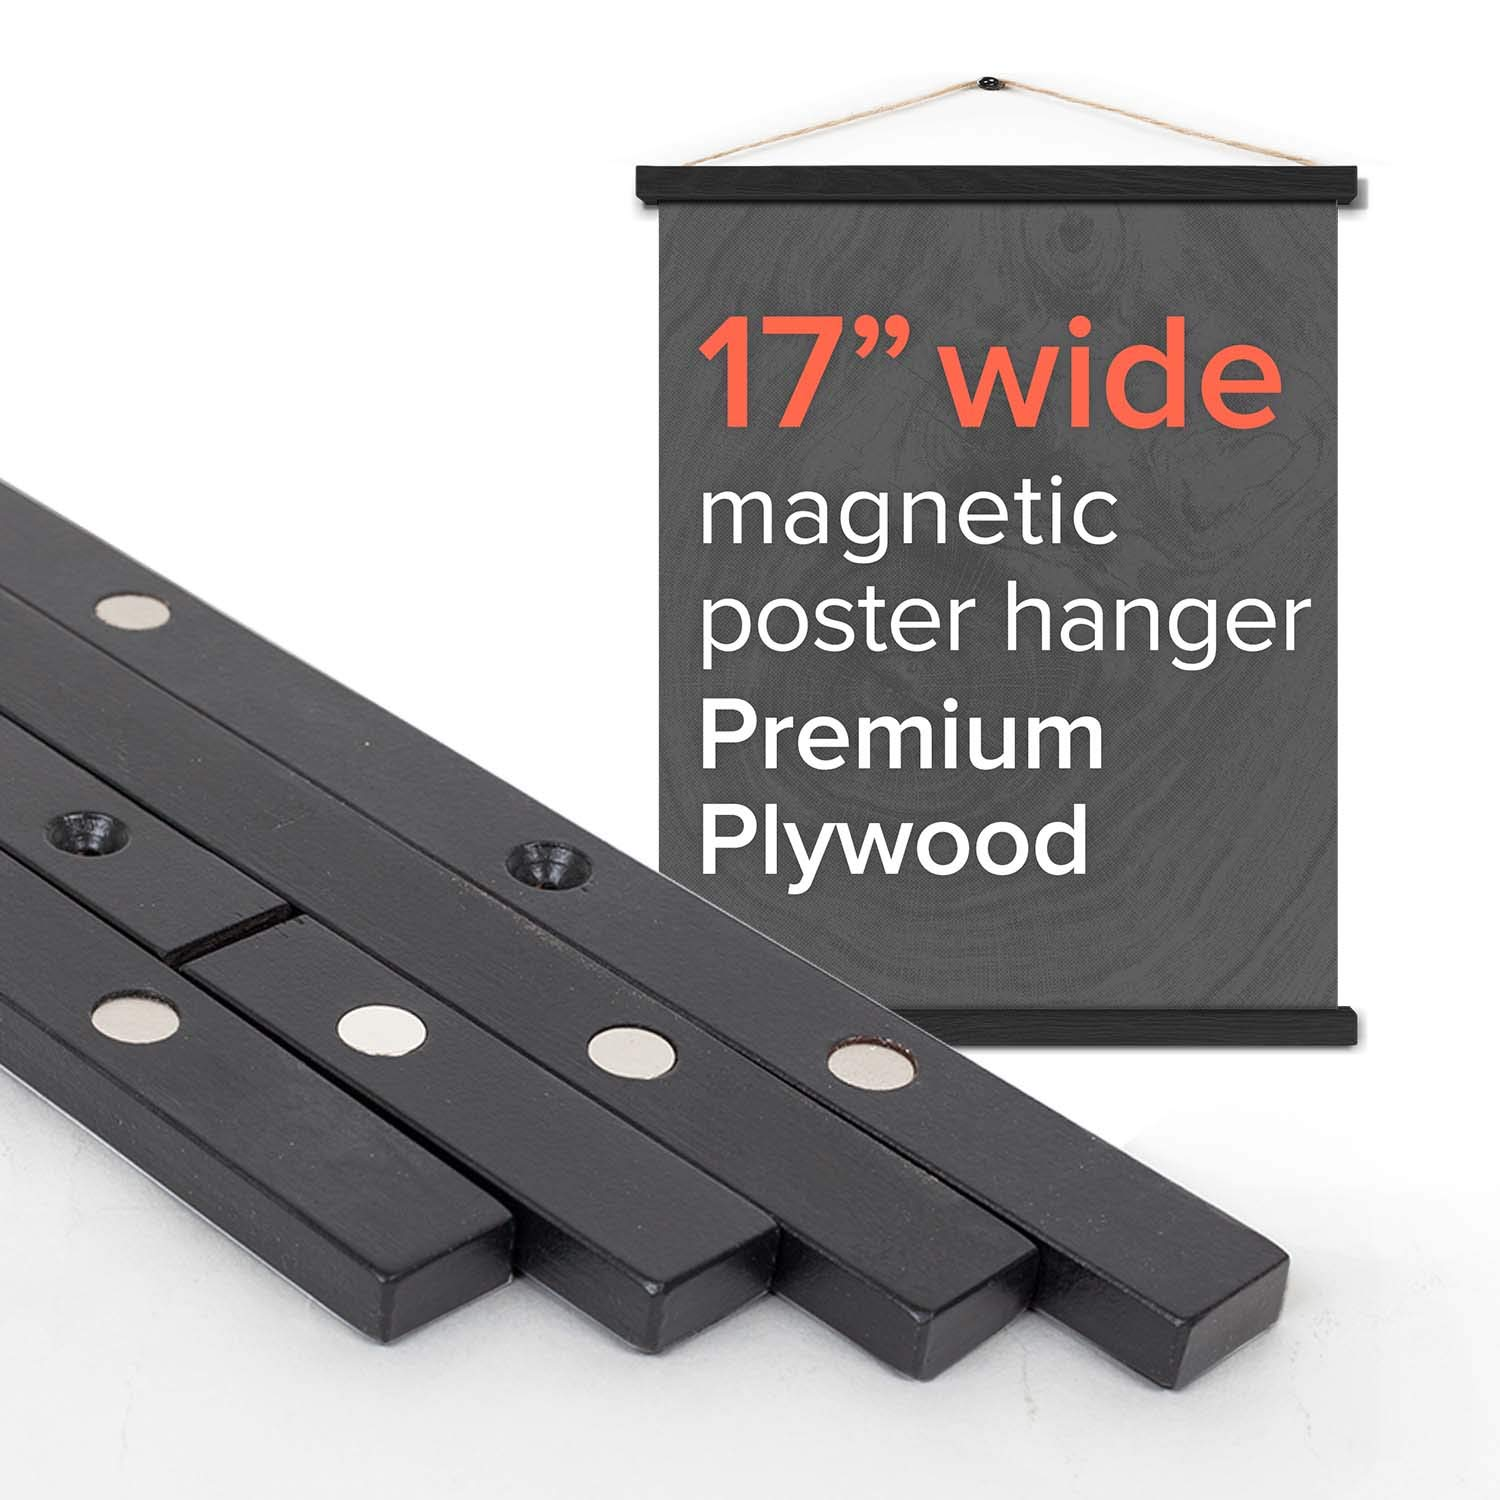 Stiicks 17'' Wide Magnetic Poster Frame Hanger in Black - Premium Plywood and Magnets Strong Enough to Hang Any Length